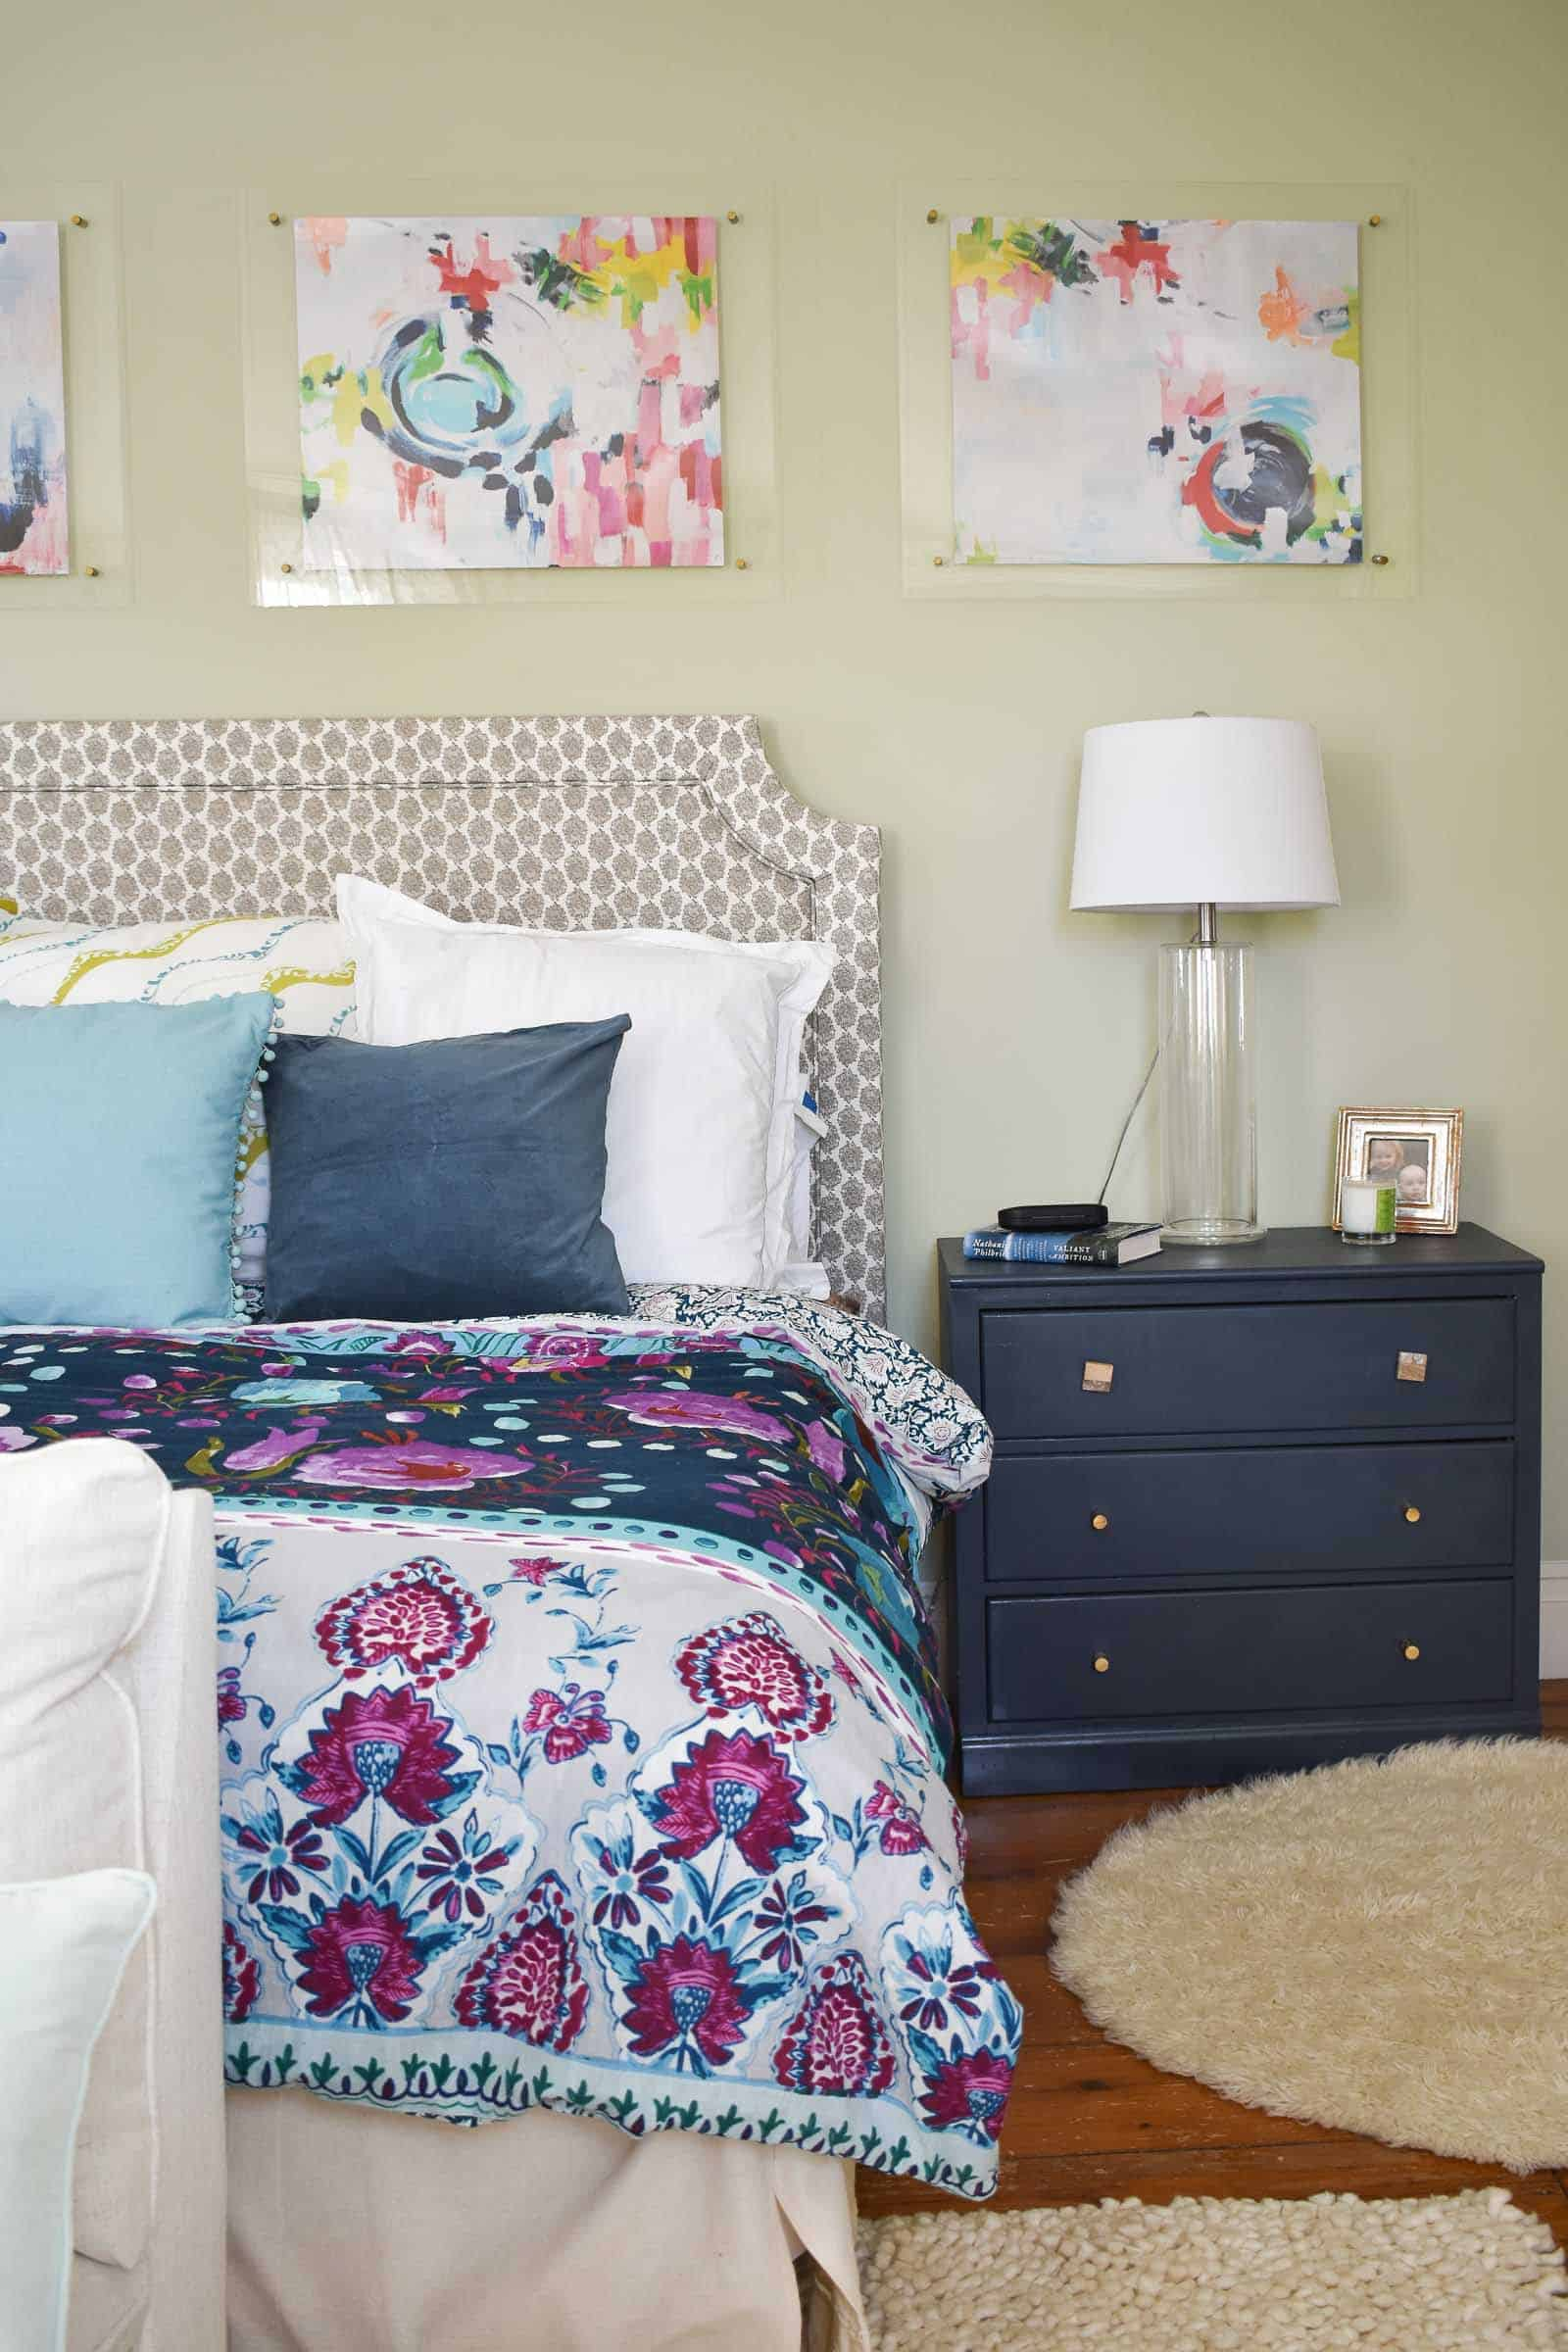 Tips for making a stylish bed